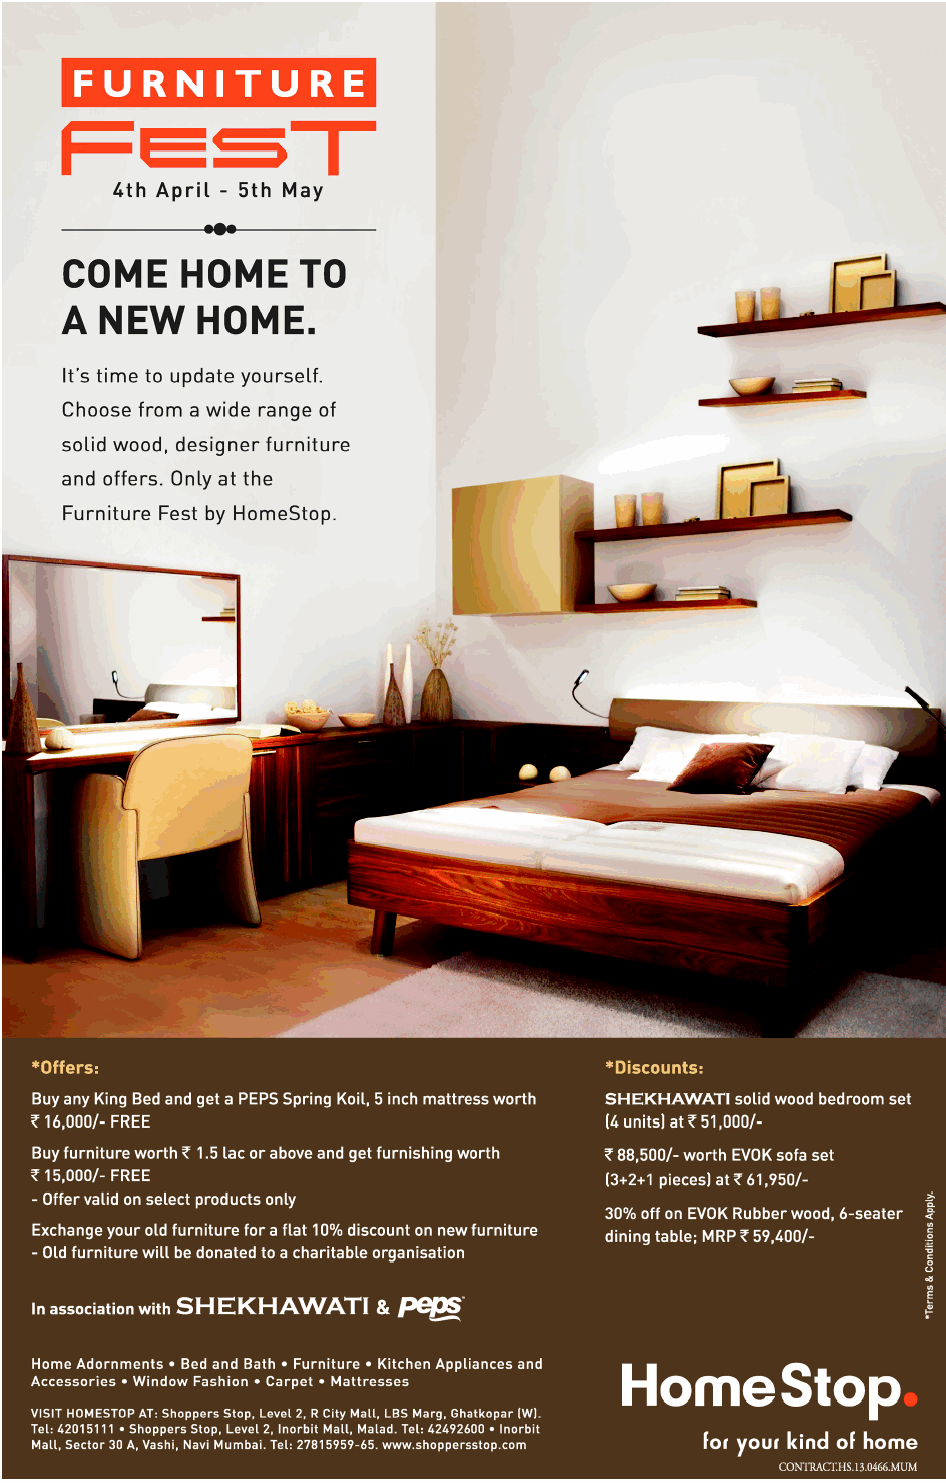 home stop furniture fest mumbai saleraja